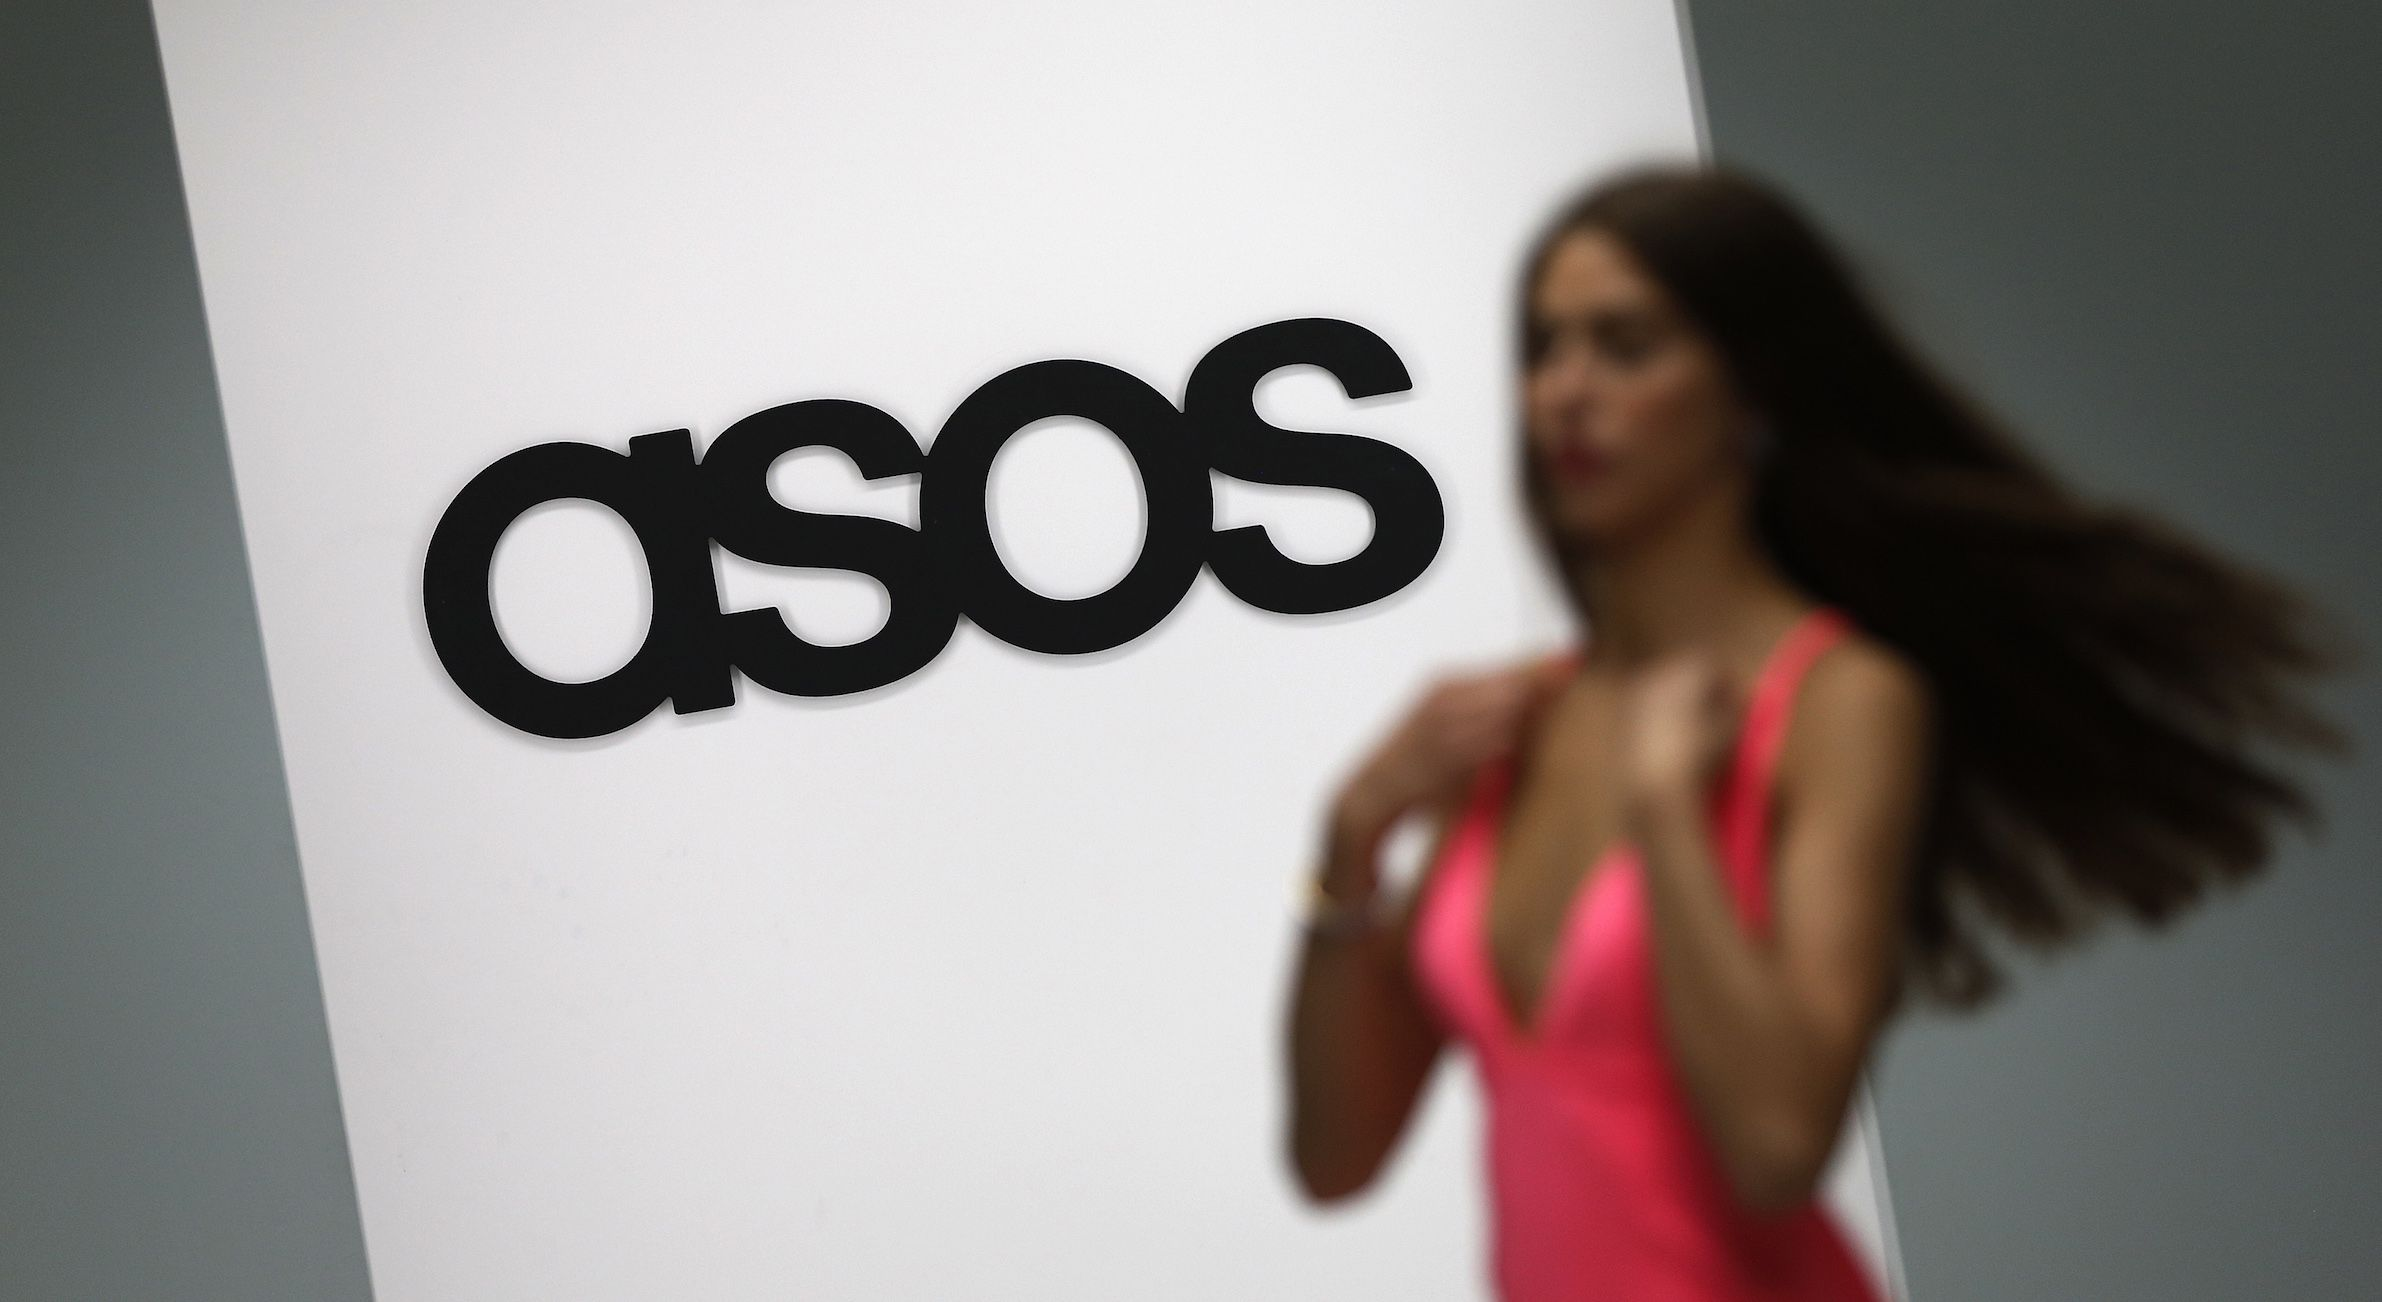 A model walks on an in-house catwalk at the ASOS headquarters in London April 1, 2014. British online fashion retailer ASOS posted a 22 percent fall in first half profit, reflecting its move to step-up the pace of infrastructure investment to meet future demand. The firm said on Wednesday it made a pretax profit of 20.1 million pounds ($33.4 million) in the six months to Feb. 28, down from 25.7 million pounds in the same period last year. Picture taken April 1, 2014. REUTERS/Suzanne Plunkett (BRITAIN - Tags: BUSINESS FASHION) - RTR3JKGZ